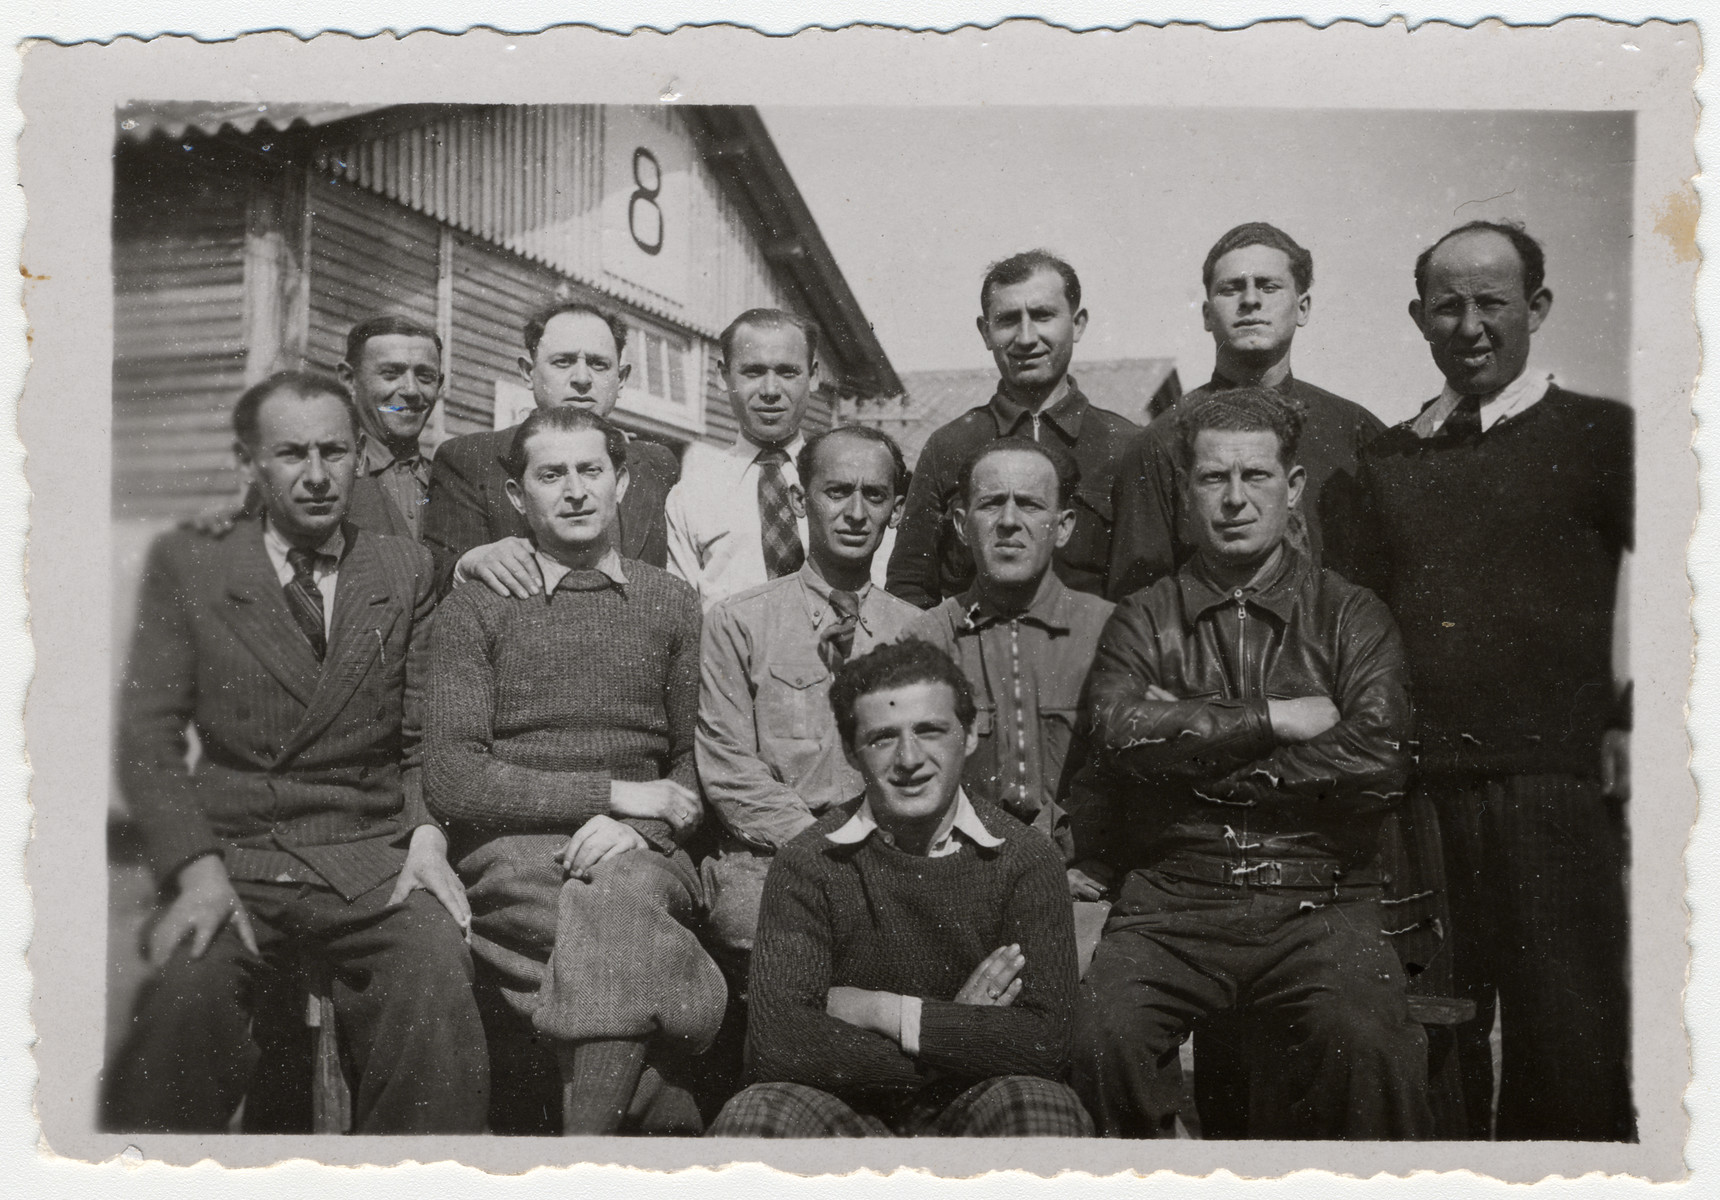 Group portrait of Jewish prisoners outside barrack 8 in the Beaune-la-Roland internment camp.  Among those pictured seated are Jankiel Sztal (second from left), Jankiel Michalowicz (center) and Itzrik Sztal (far right).  Moishe Sztal is standing third from the right.